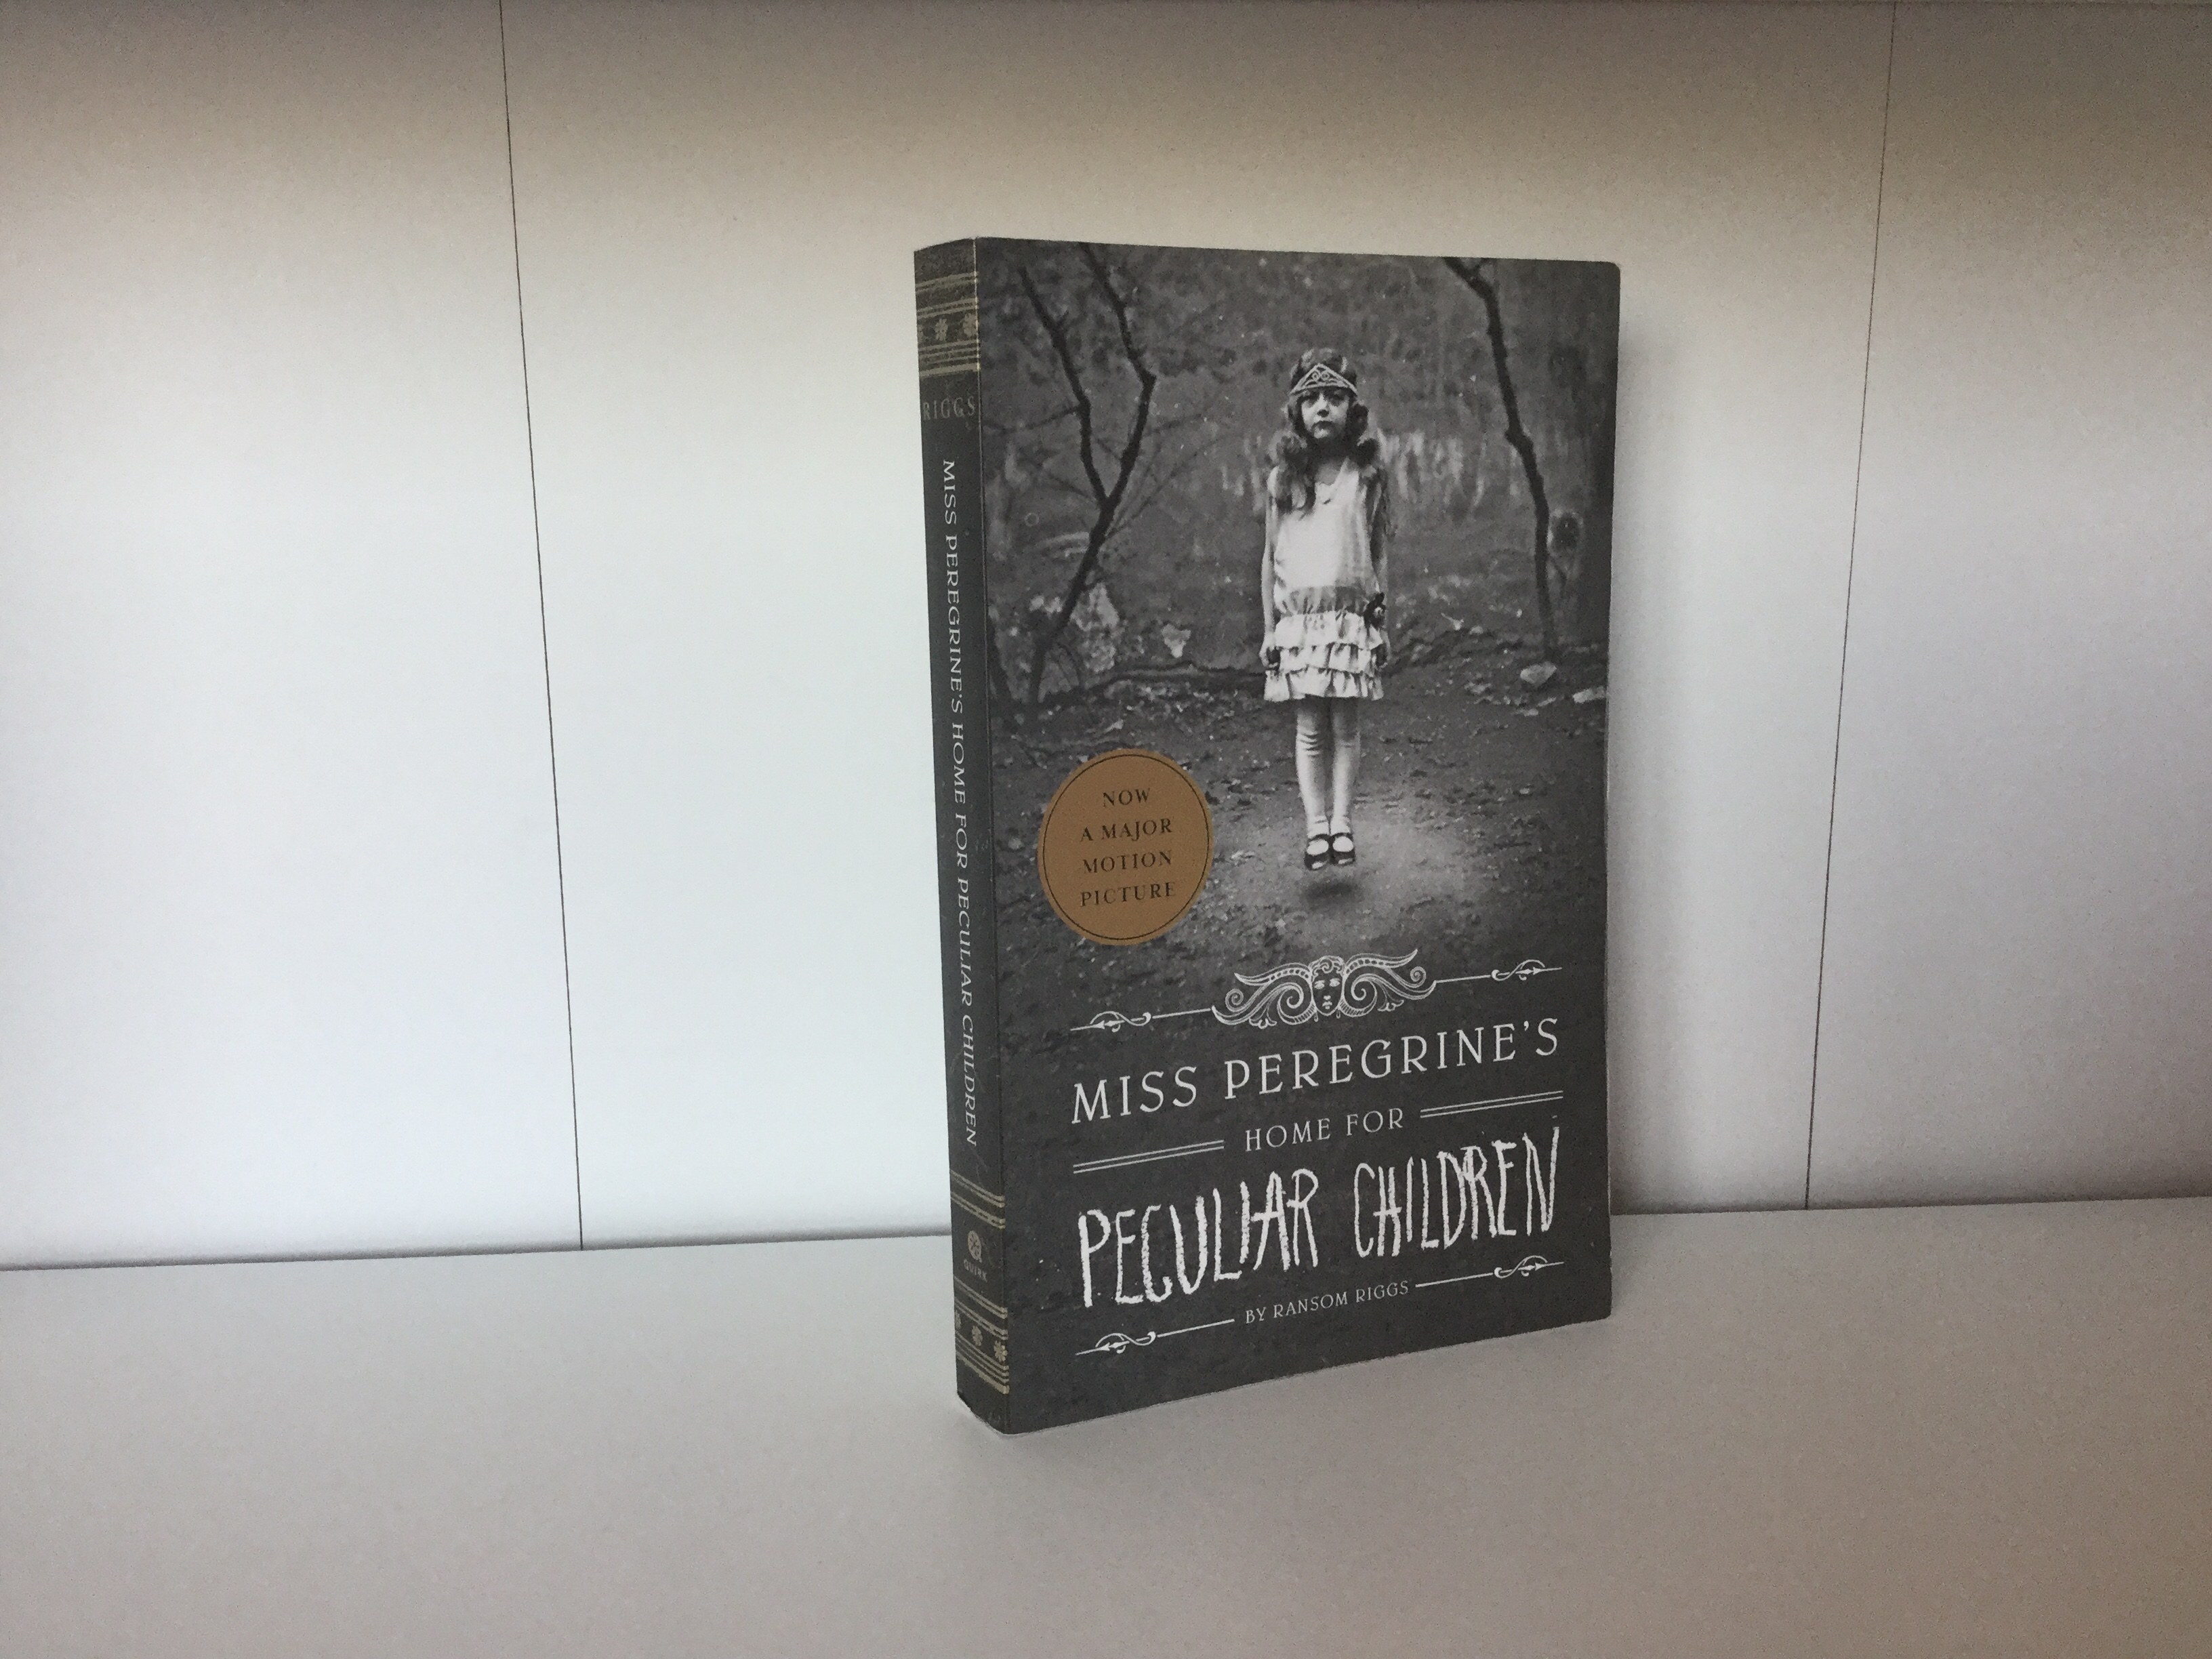 The cover of Miss Peregrine's Home for Peculiar Children by Ransom Riggs